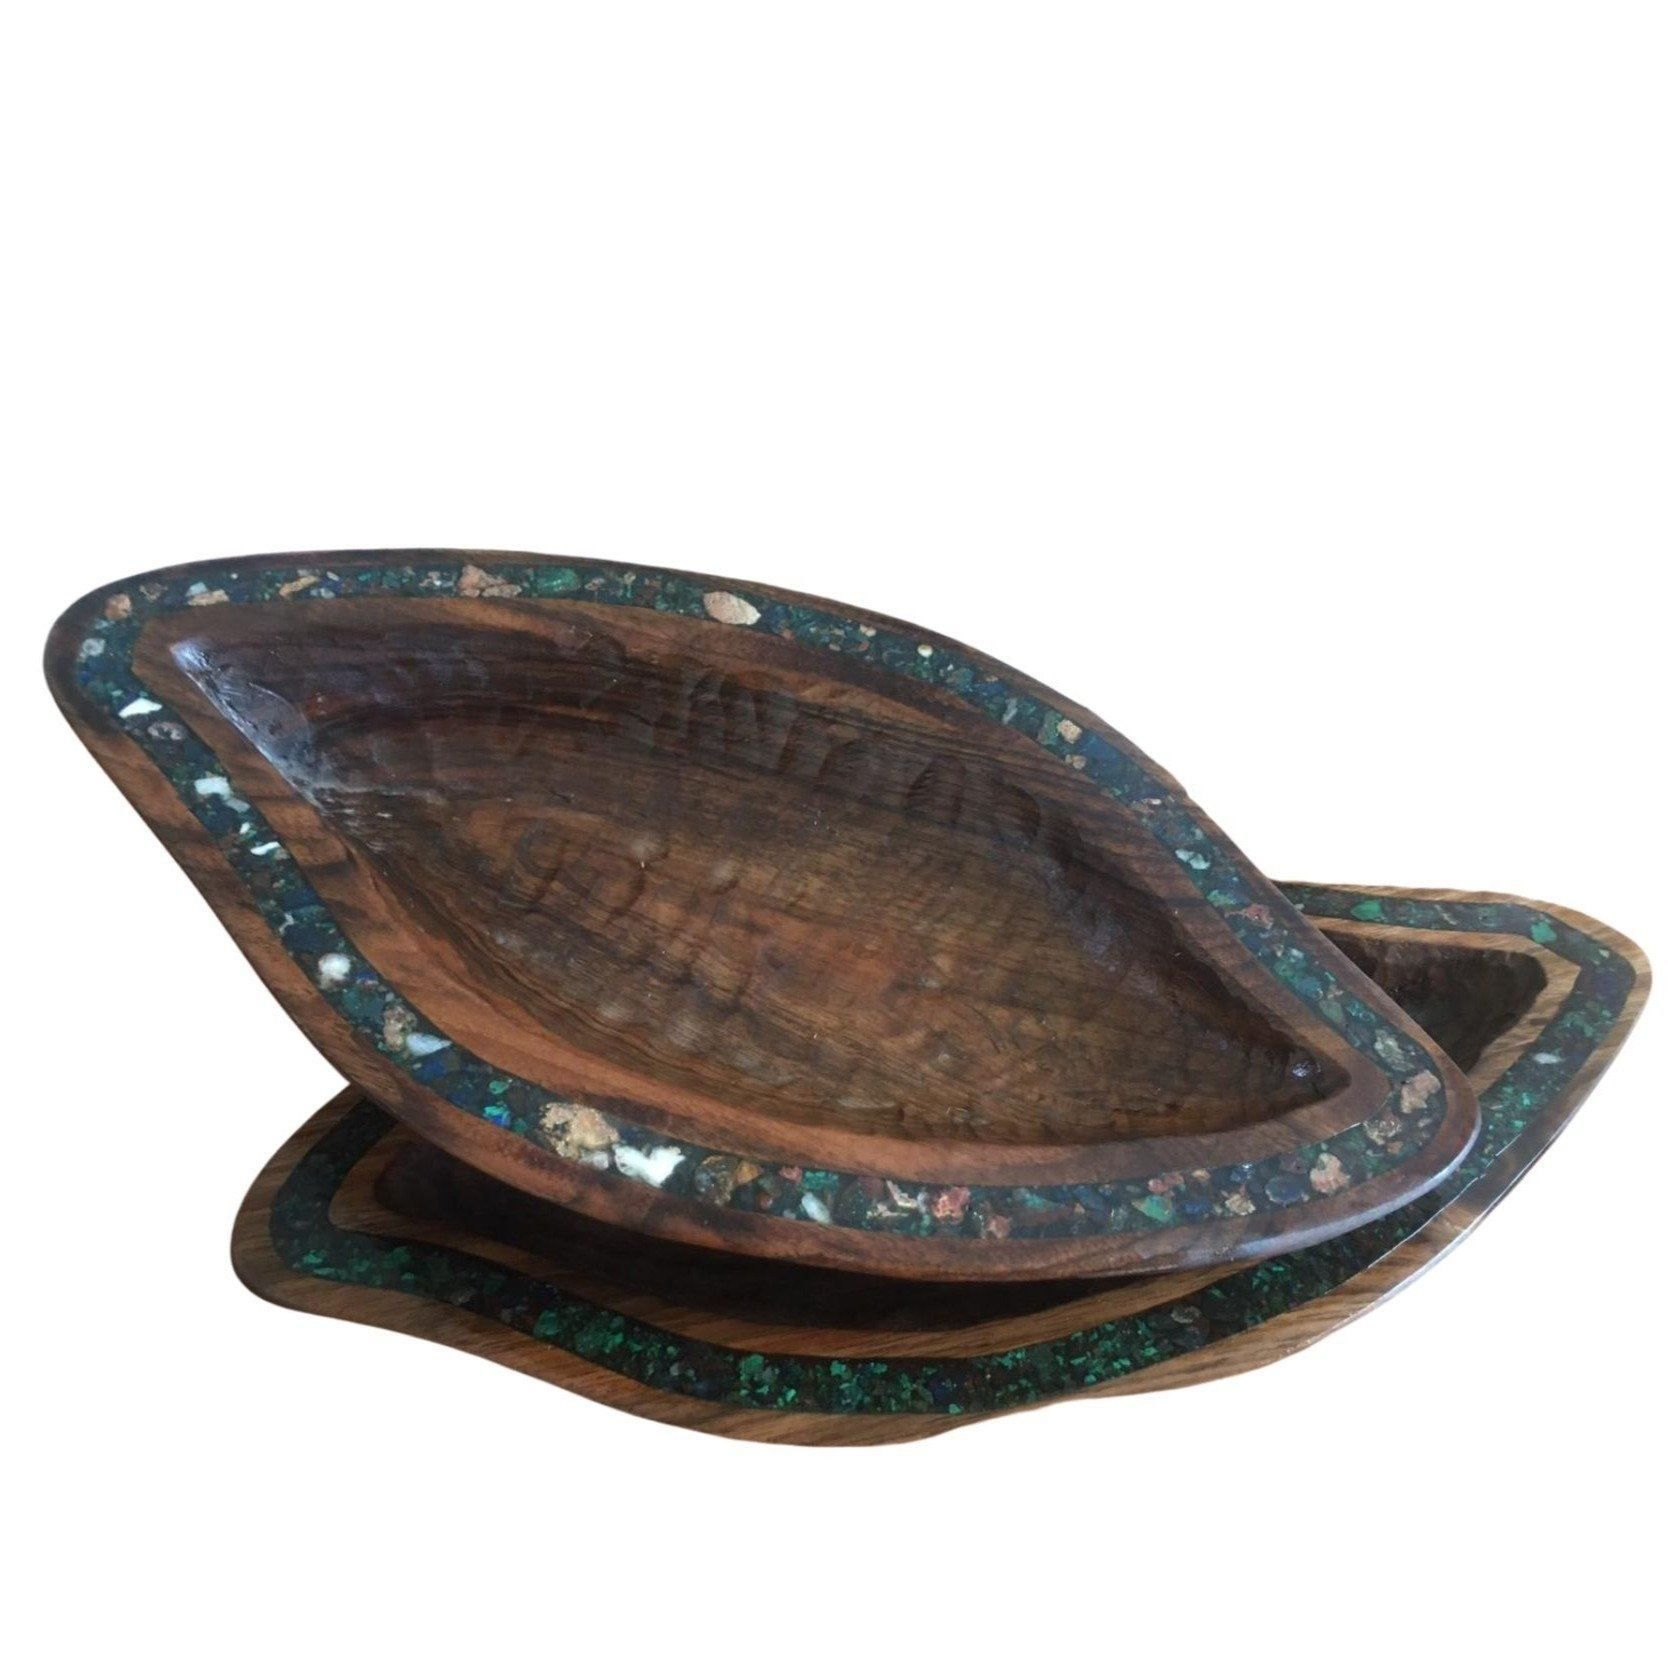 Photo of Small Walnut & Gemstone Moroccan Bowl – Eve Branson Foundation Collection – Round [damaged, discounted]